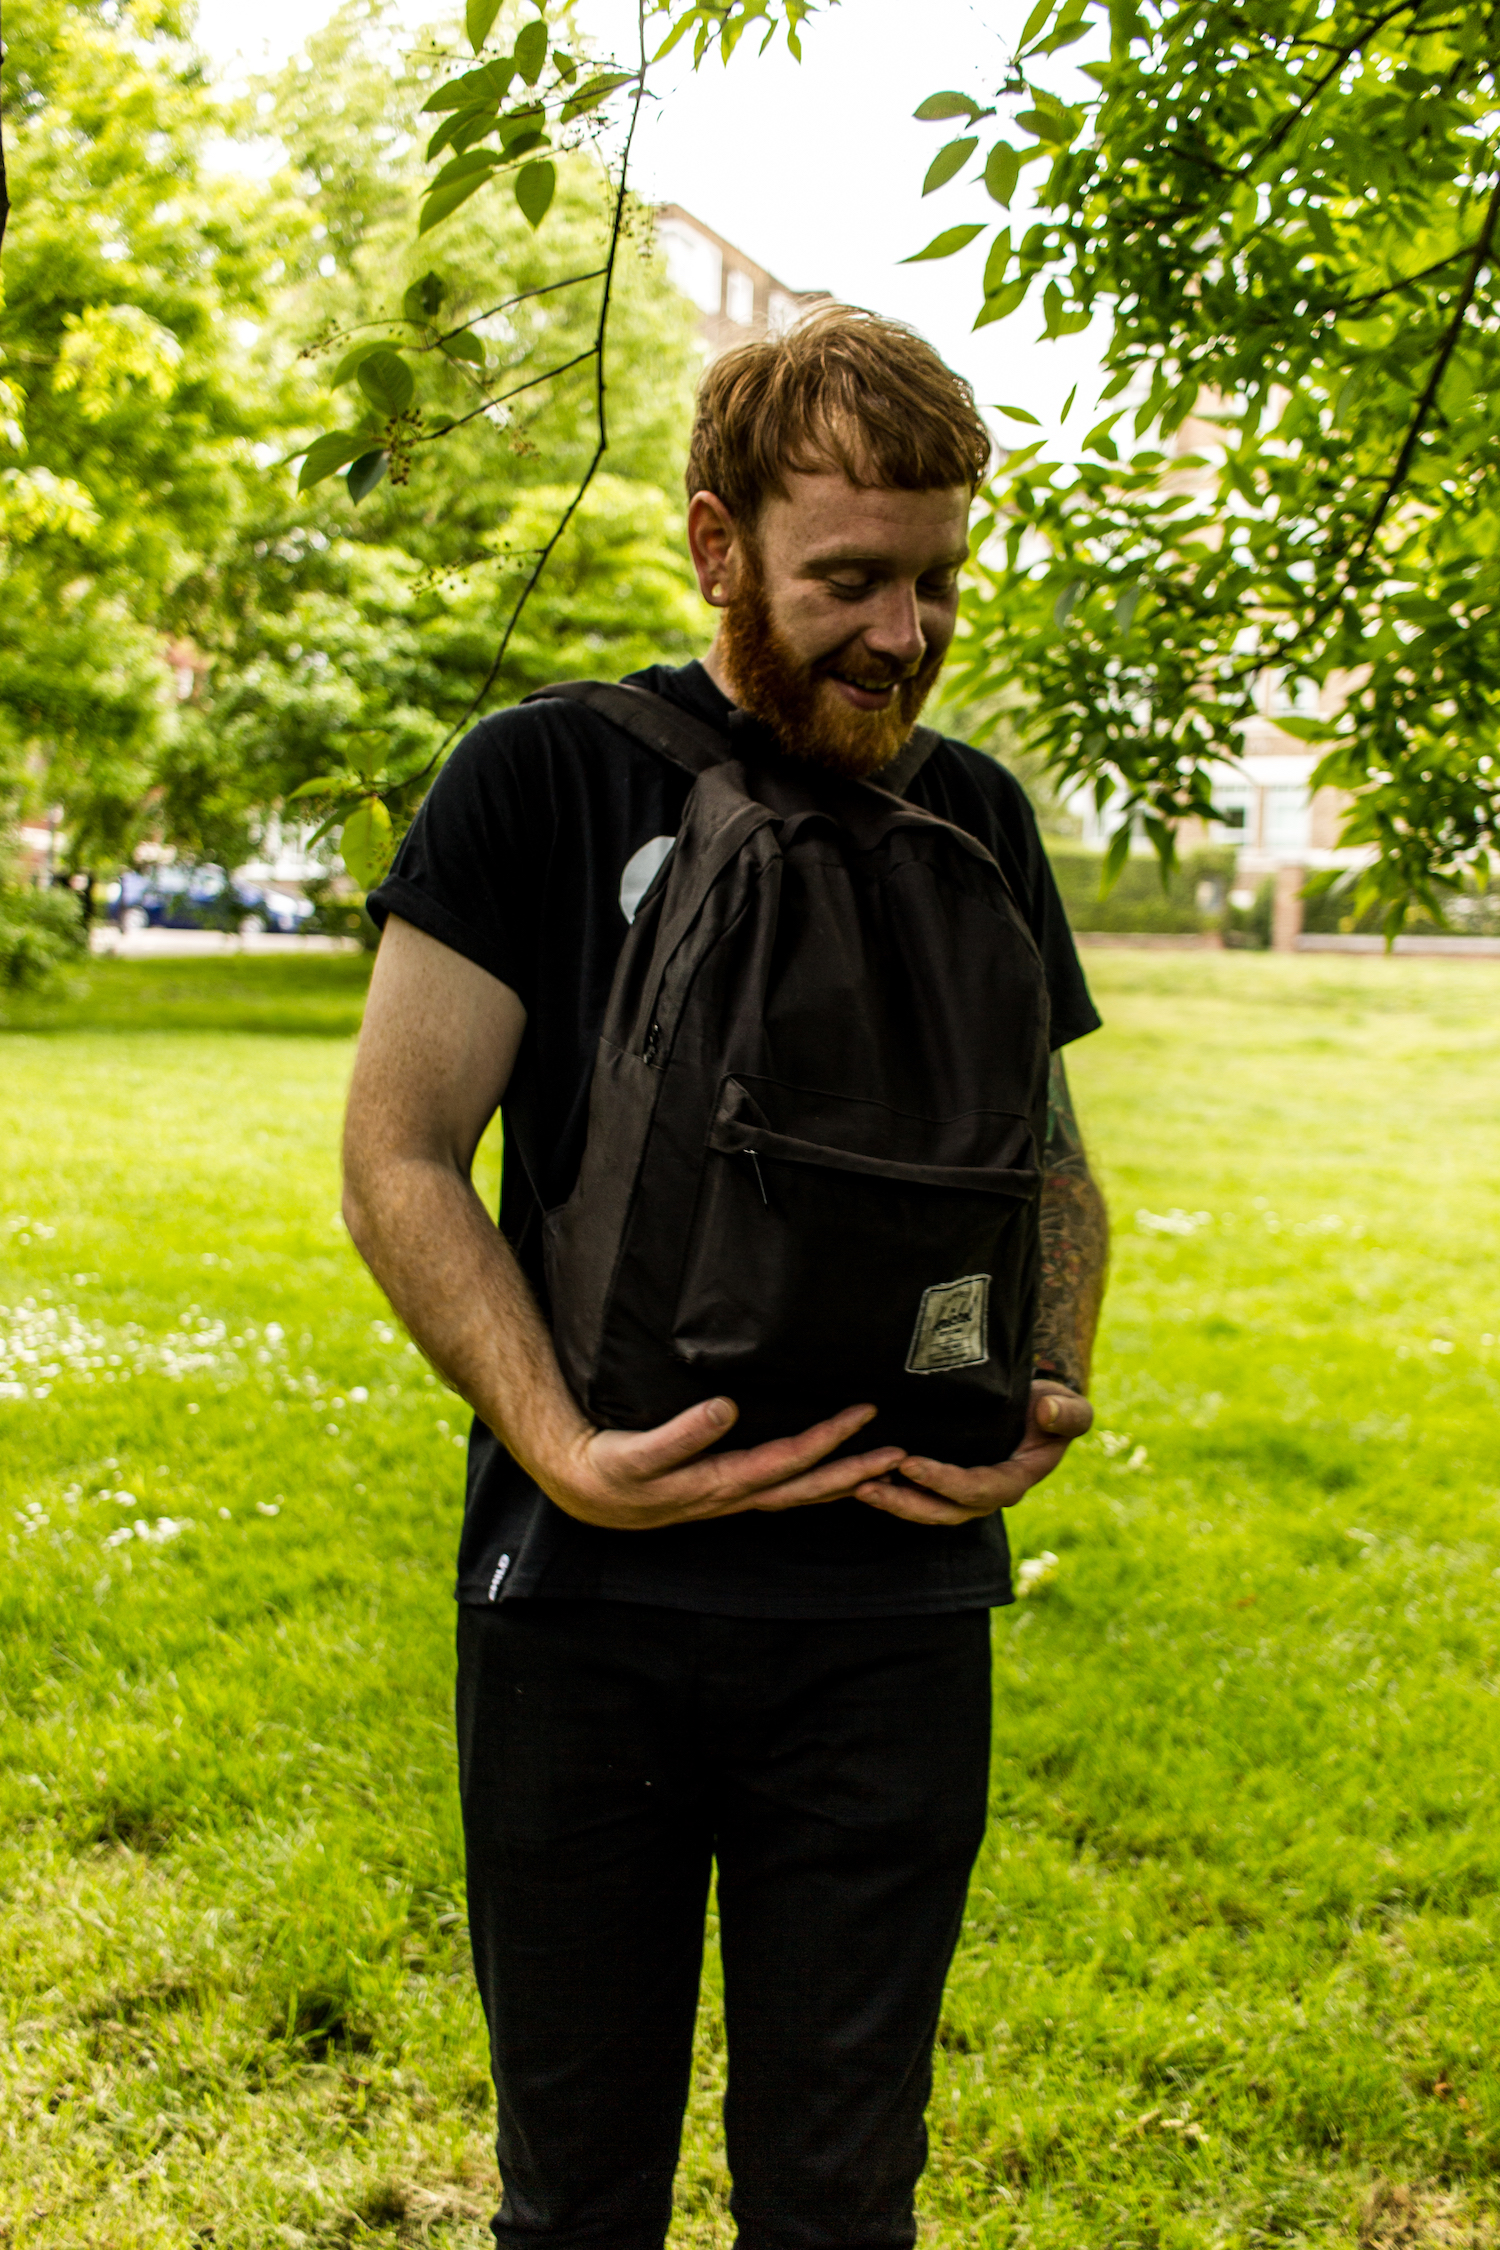 Professional Photography White Man With Beard Black T-Shirt And Black Jeans Standing Holding Black Backpack With Green Grass And Trees In Background In Little Venice Paddington London